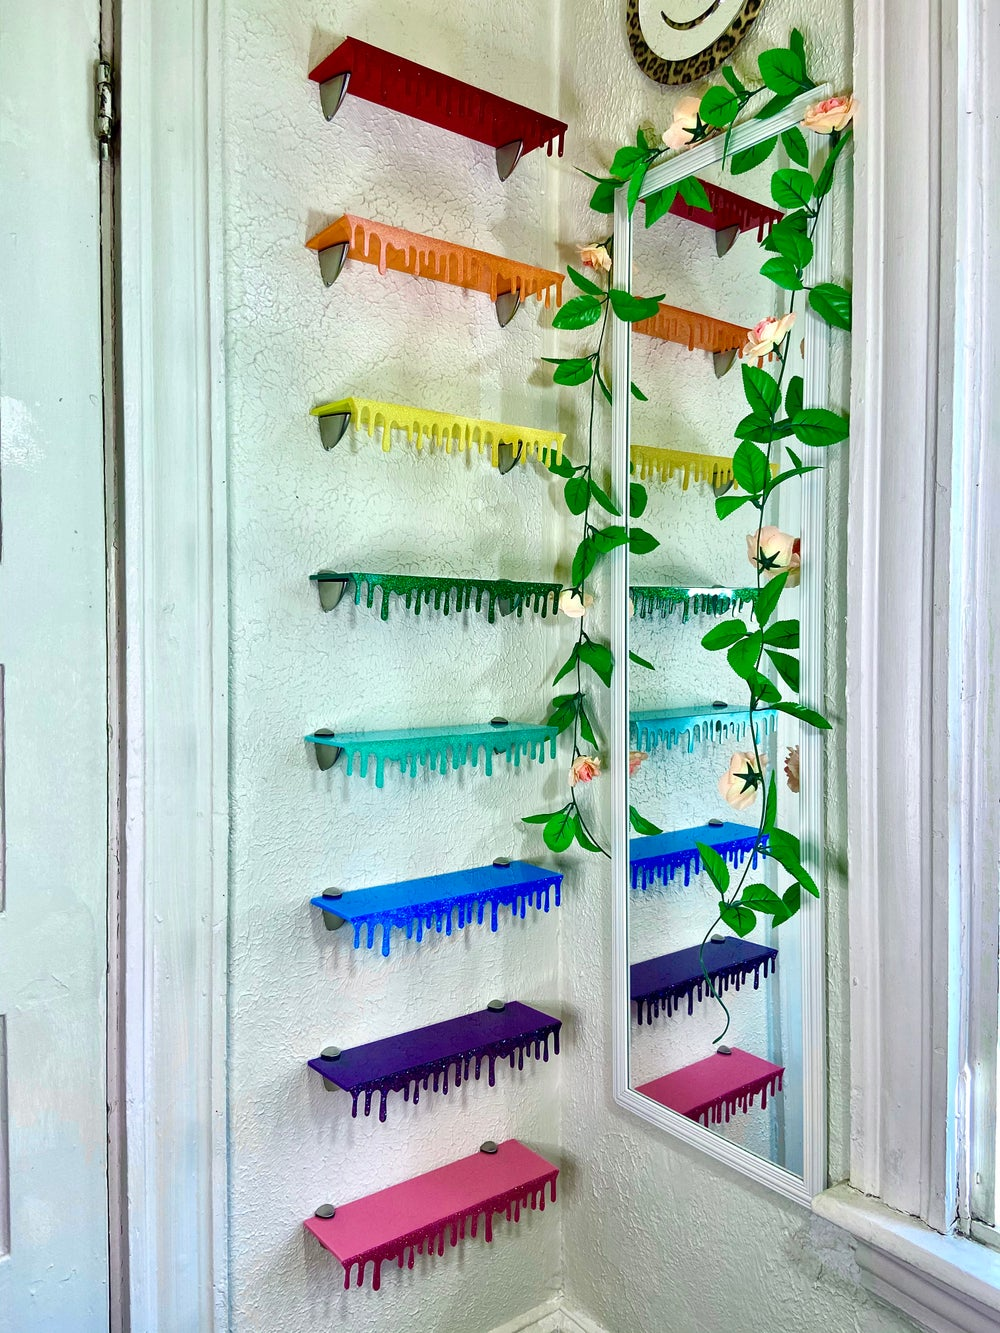 COMPLETE OPAQUE RAINBOW SET OF 8 SHELVES (includes brackets)